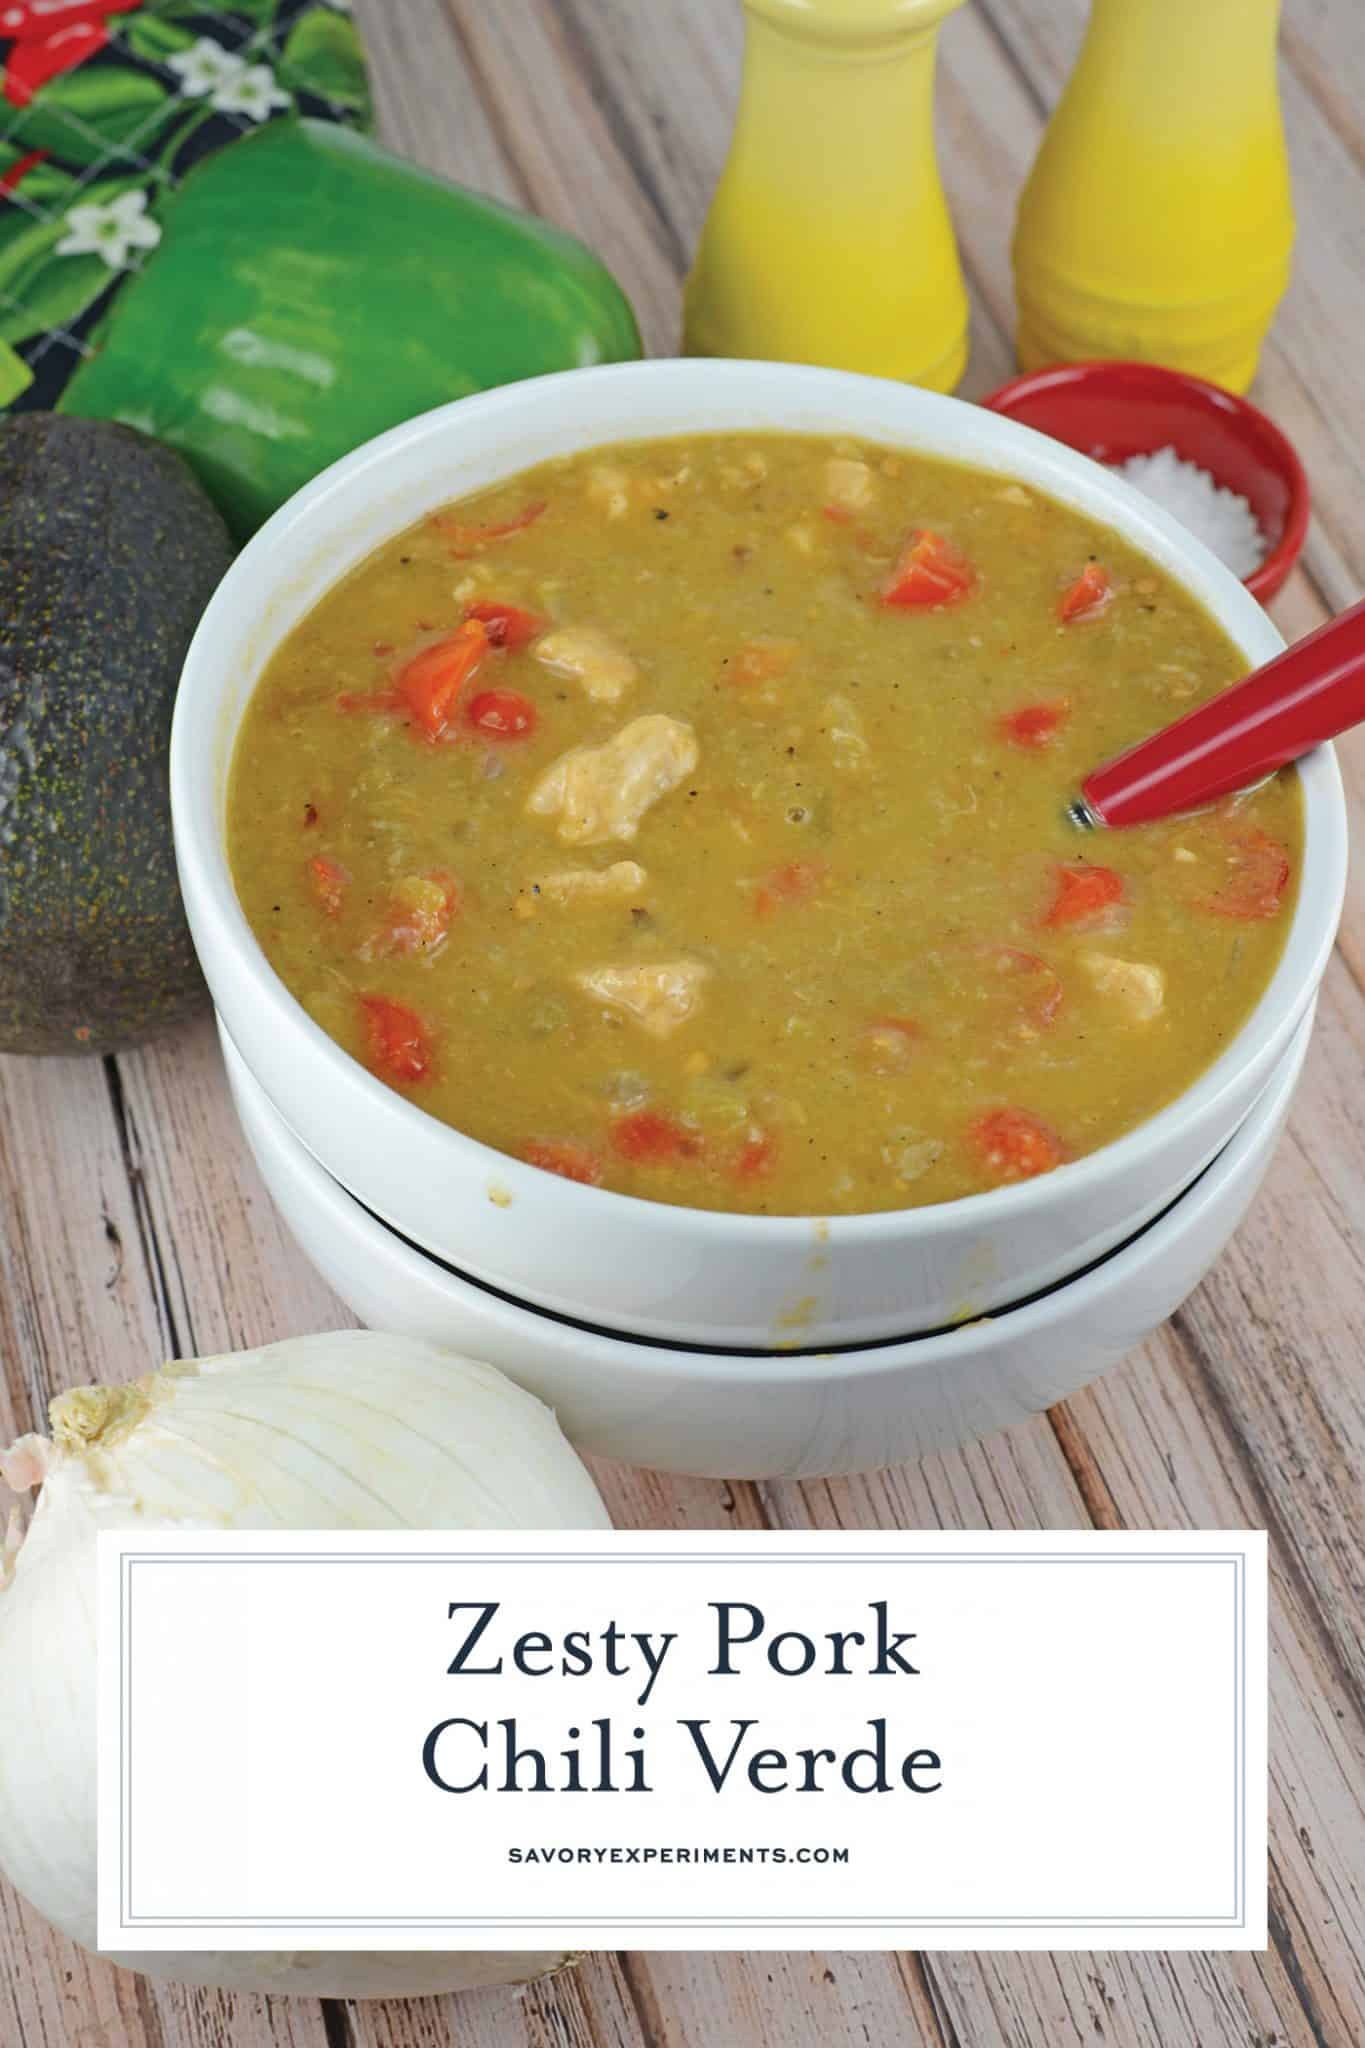 Pork Chili Verde is a wonderful mixture made up of green chilis, tomatoes and spices, best served over giant burritos, eggs, refried beans or in tacos. #porkchilieverde #chiliverderecipe www.savoryexperiments.com